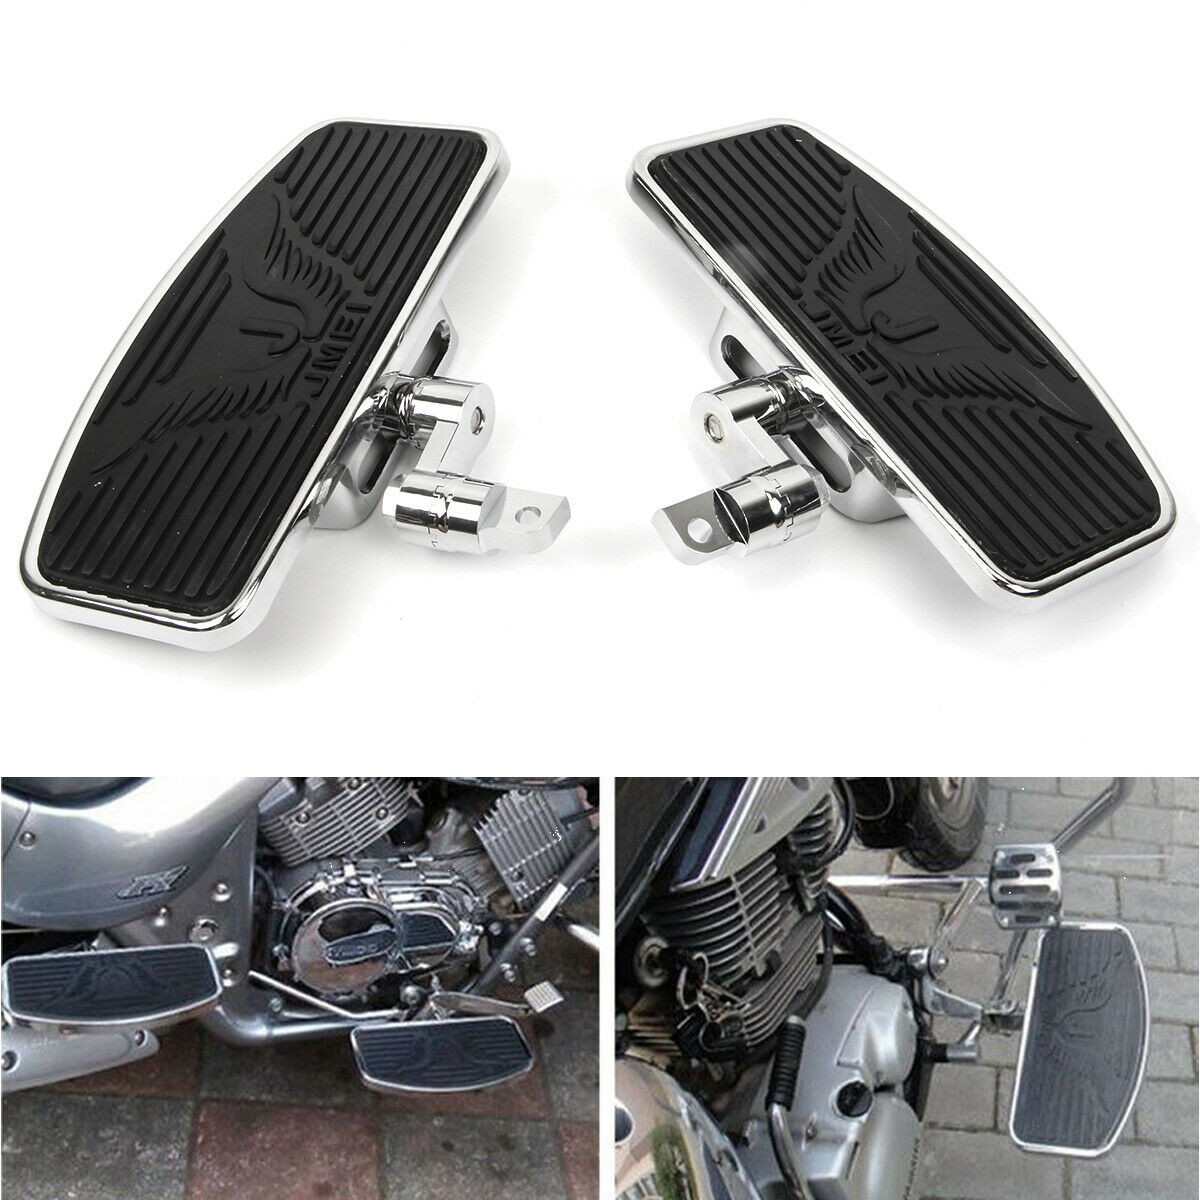 Motorcycle Footboards plating Foot pegs Footrest Footboards For 1986 Harley-Davidson Touring and Softail Models Dyna Sportster 883 1200 Chrome